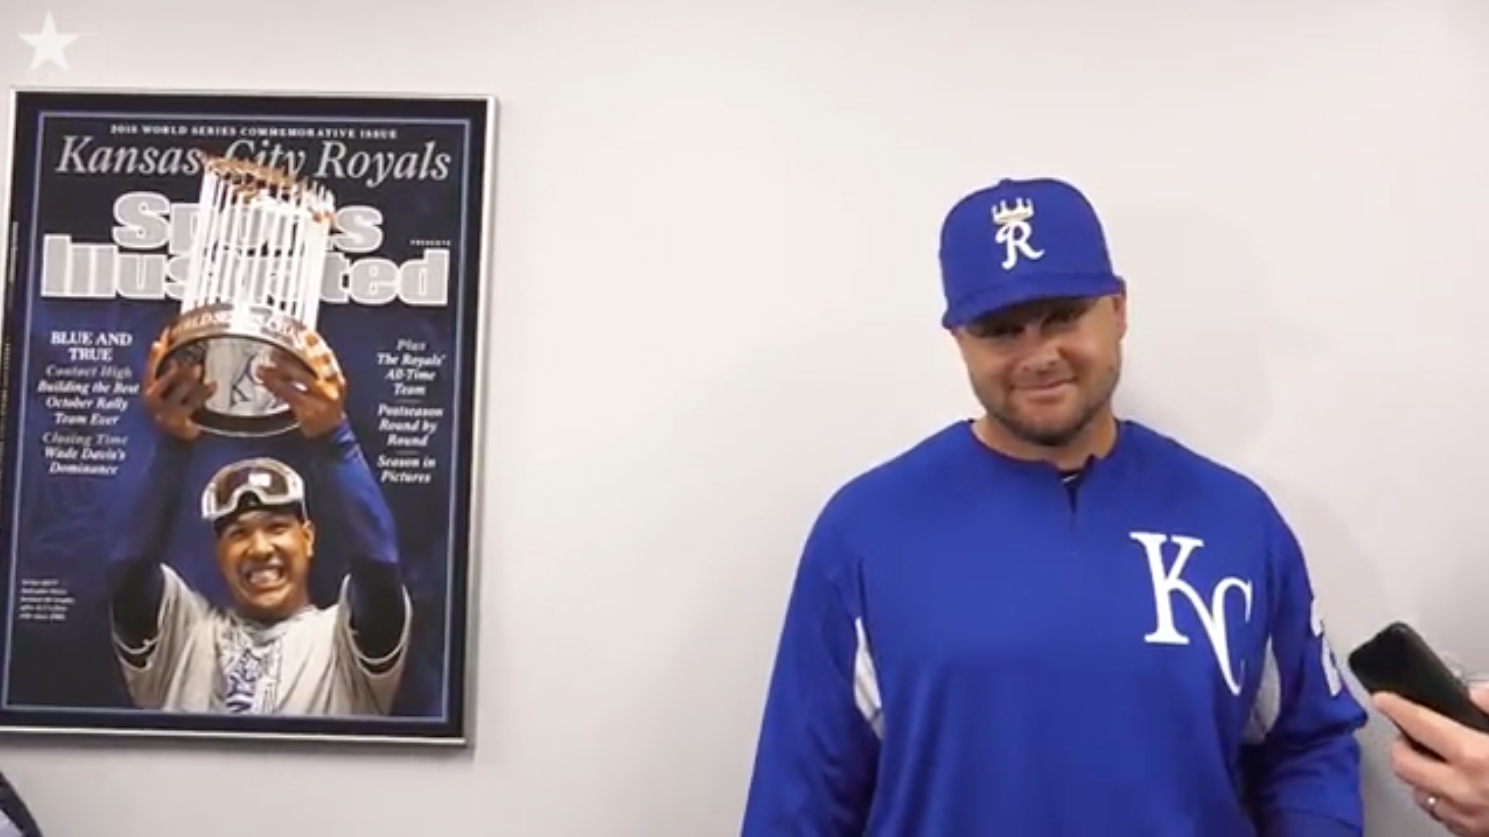 'Funny how baseball works out': Lucas Duda now a Royal